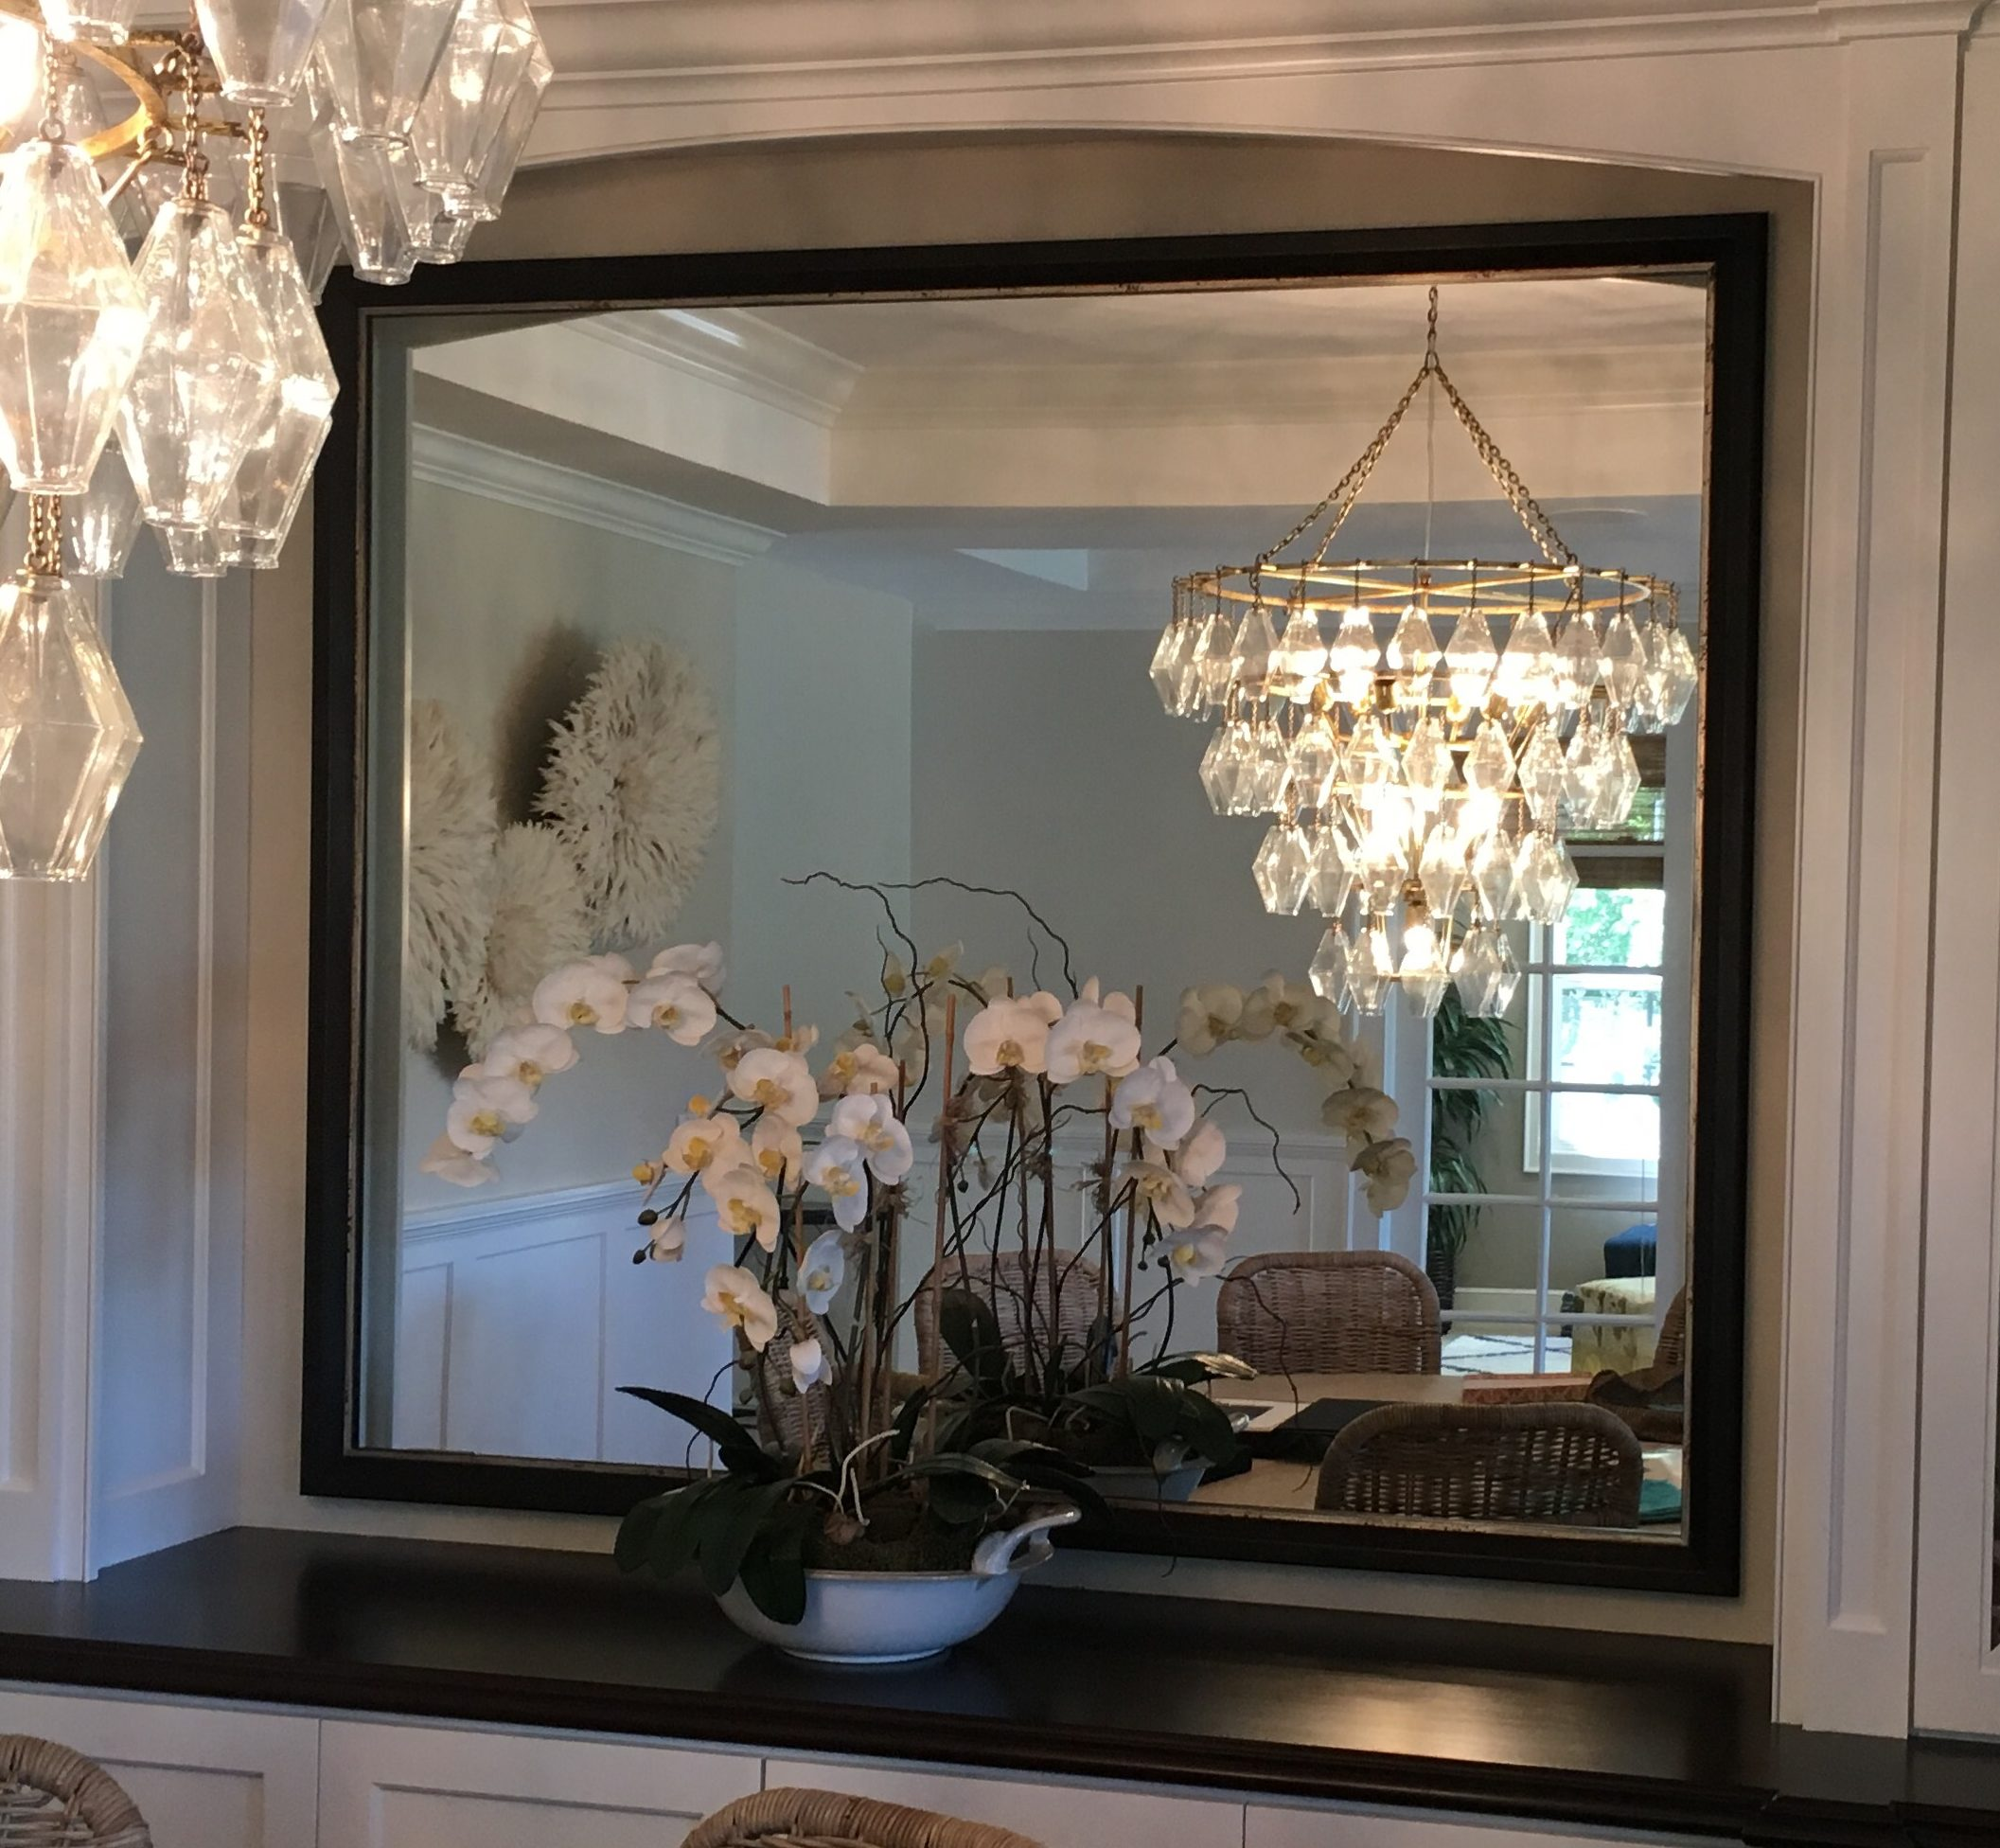 Custom Framed Mirror |  Custom Design and Framing by Karen's Detail Custom Frames, Orange County CA